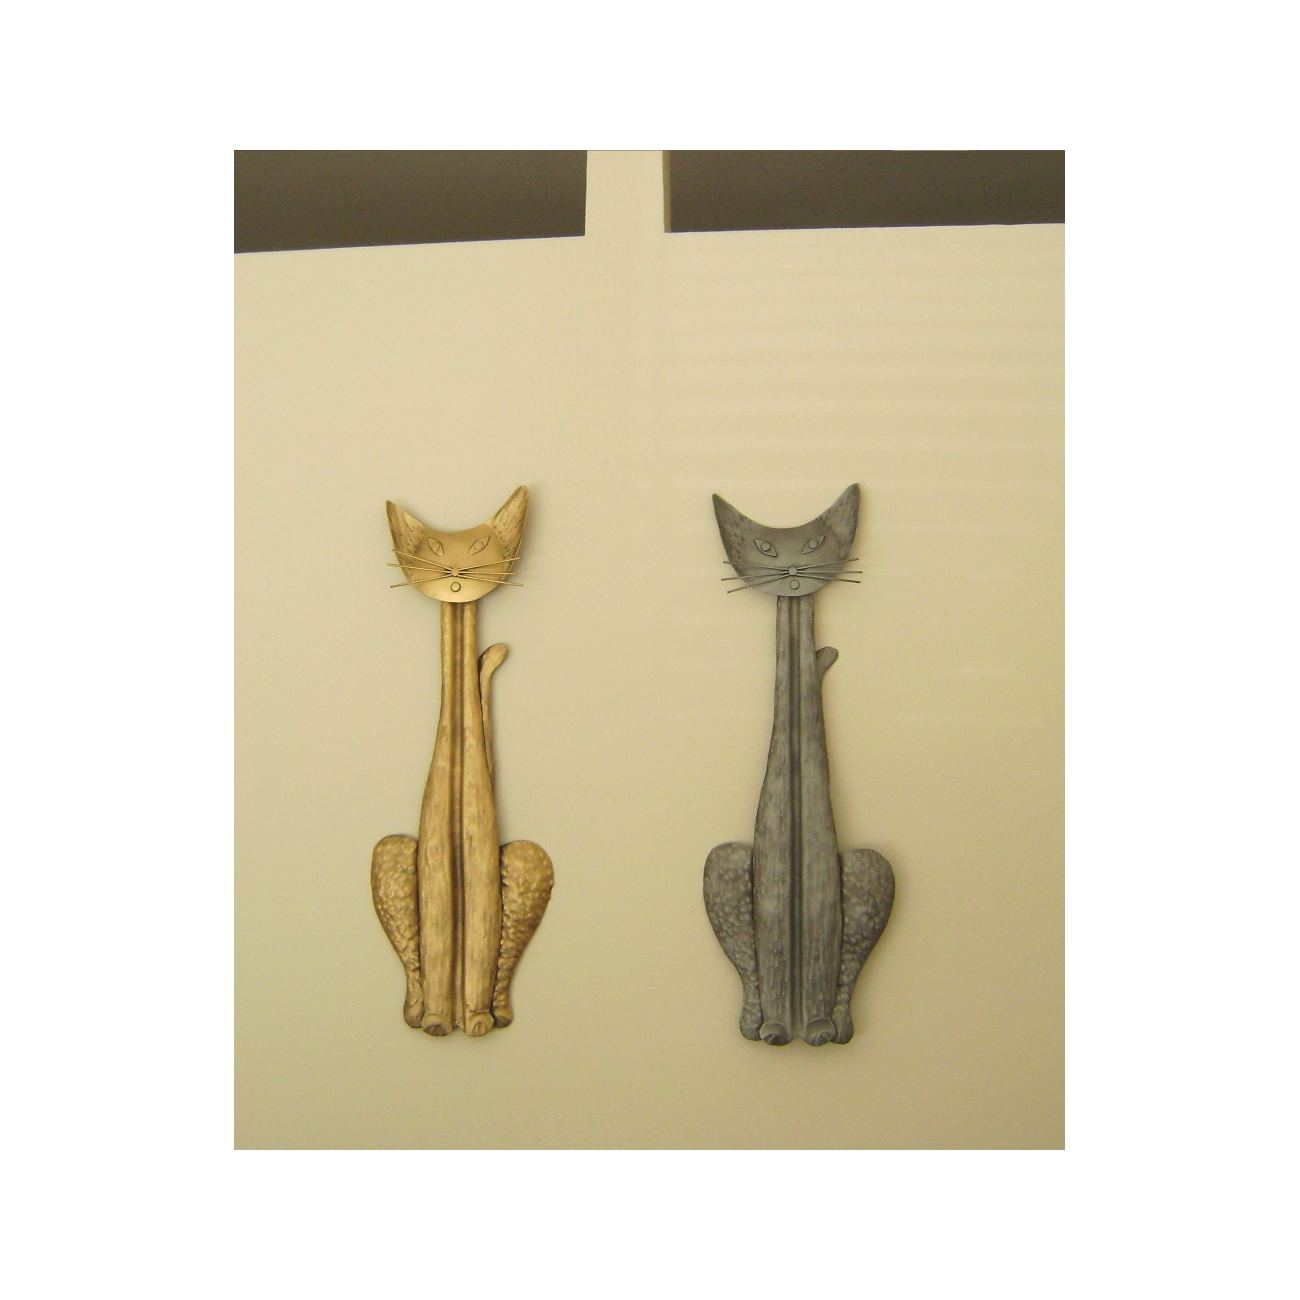 Cat Figure - Large Handmade Metal Wall Art Decor Sculpture - Silver ...